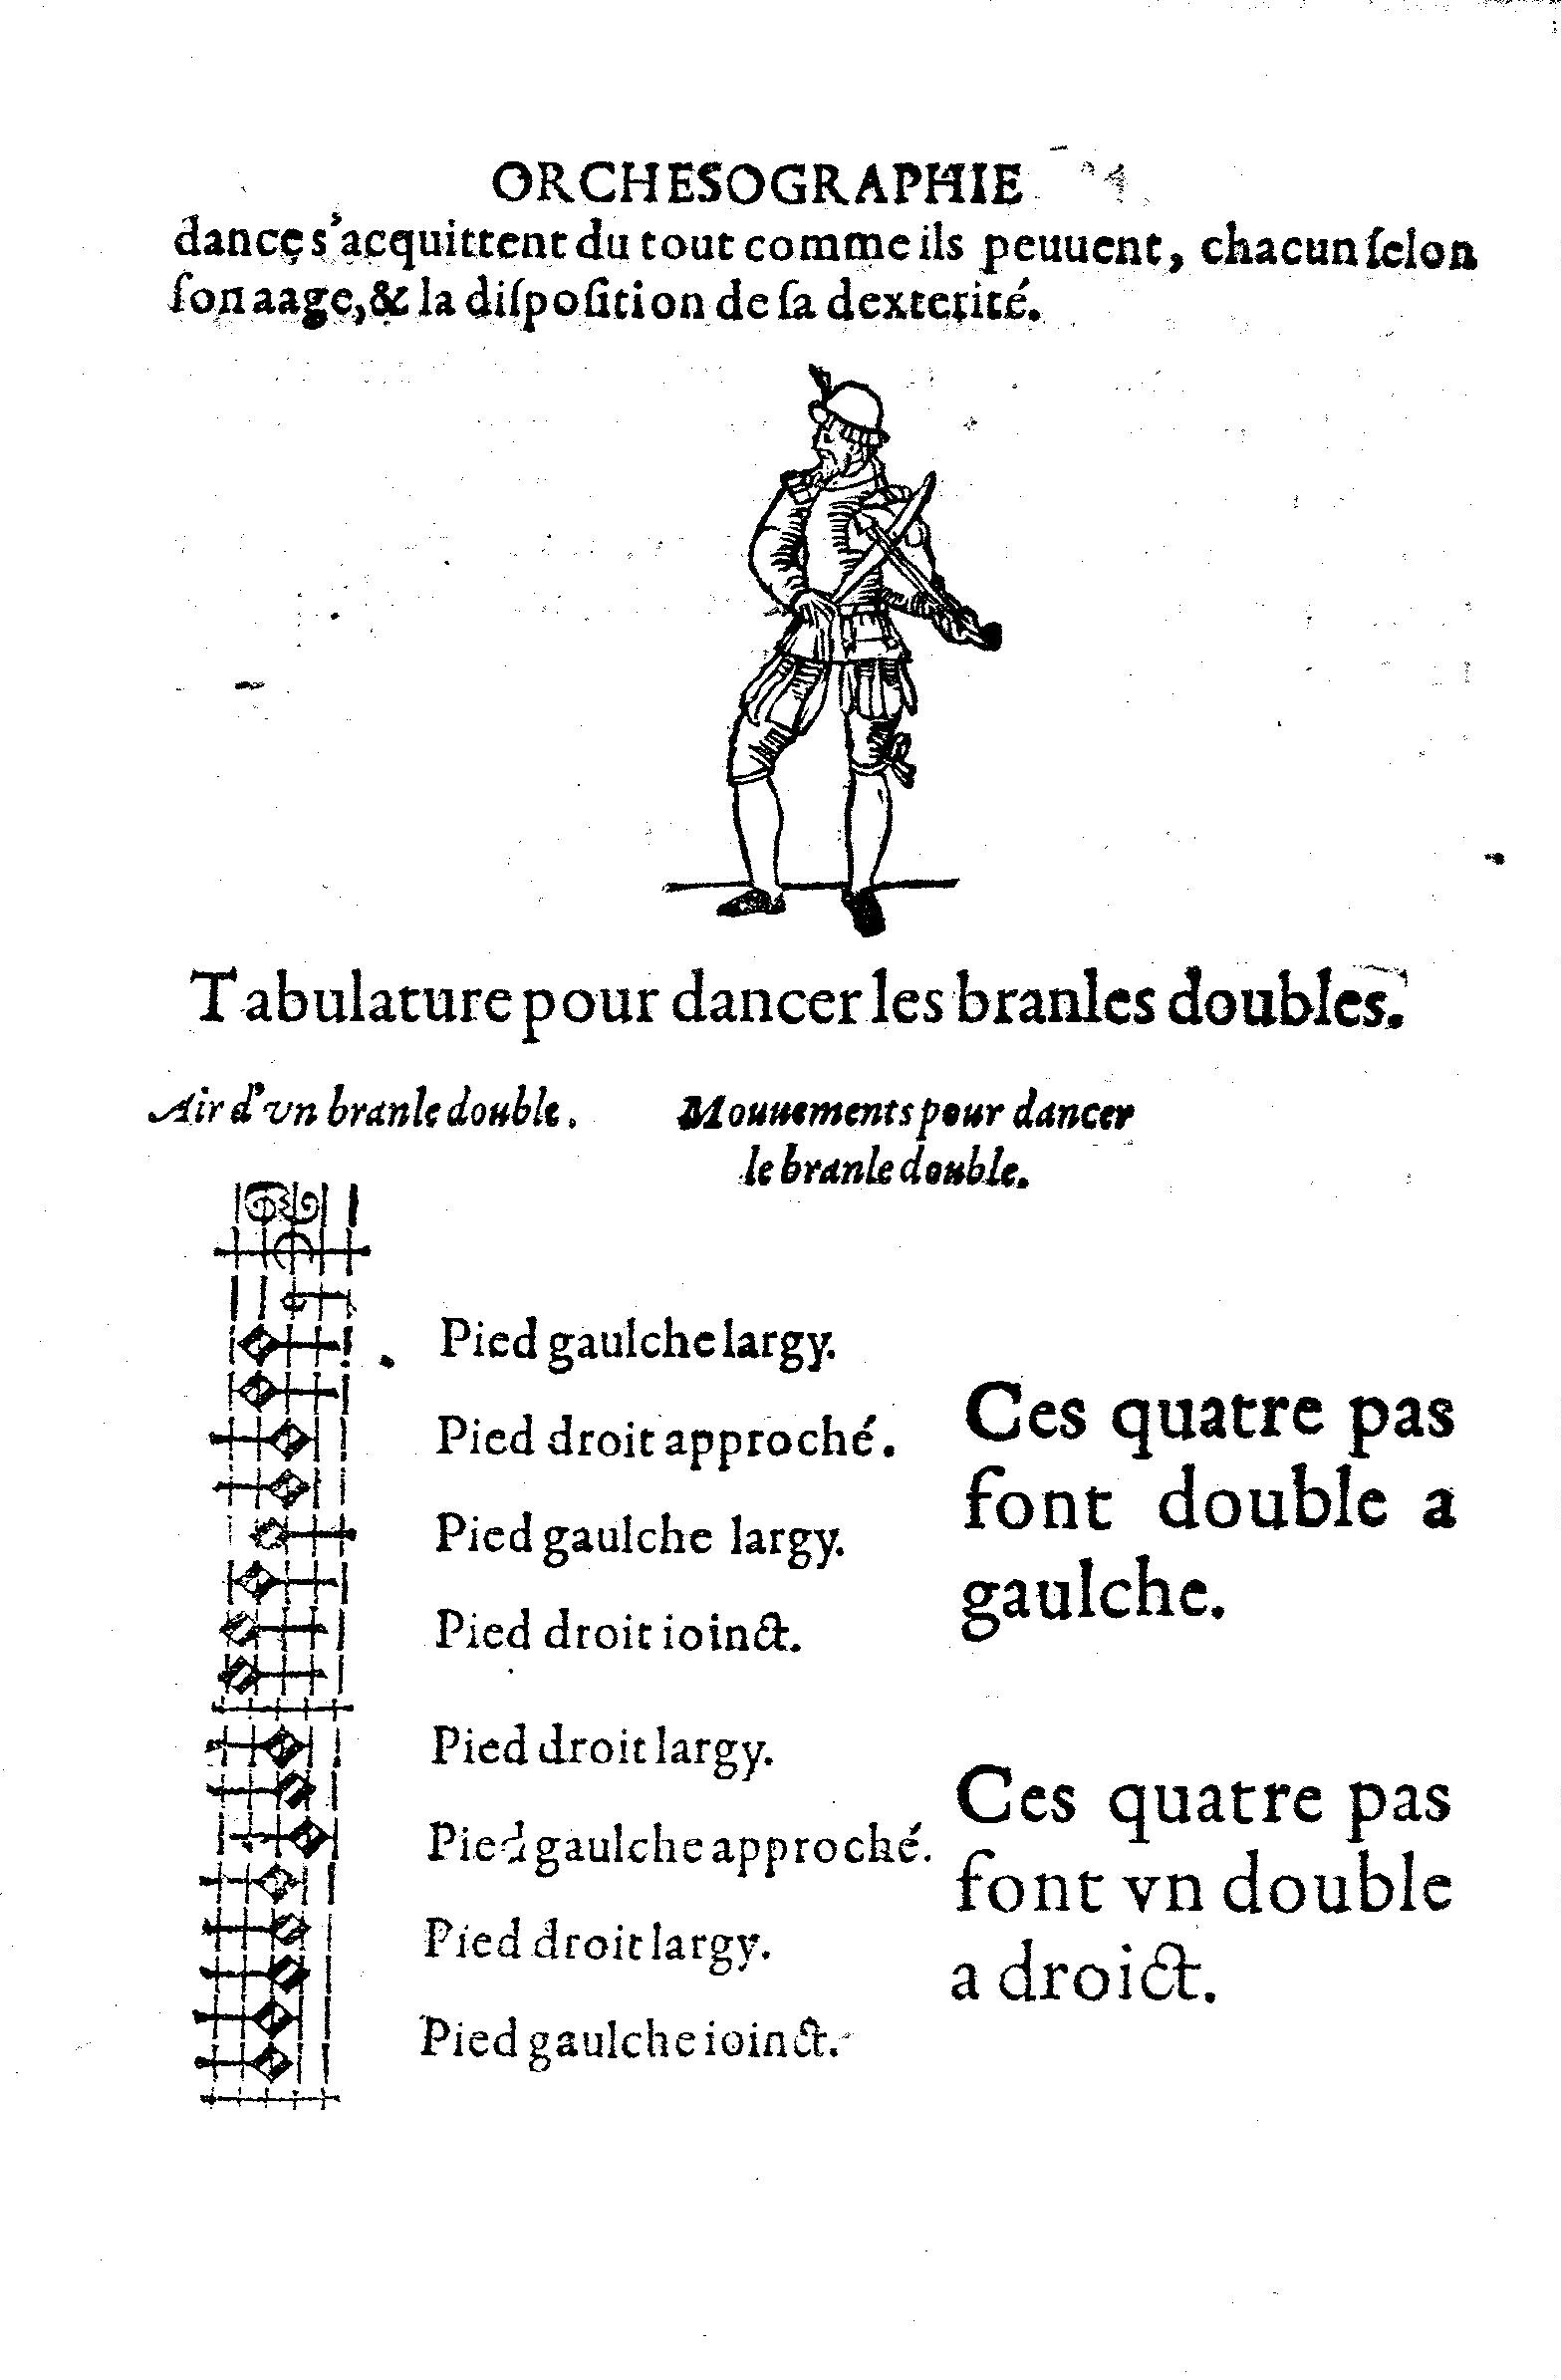 Man playing fiddle on a music note page